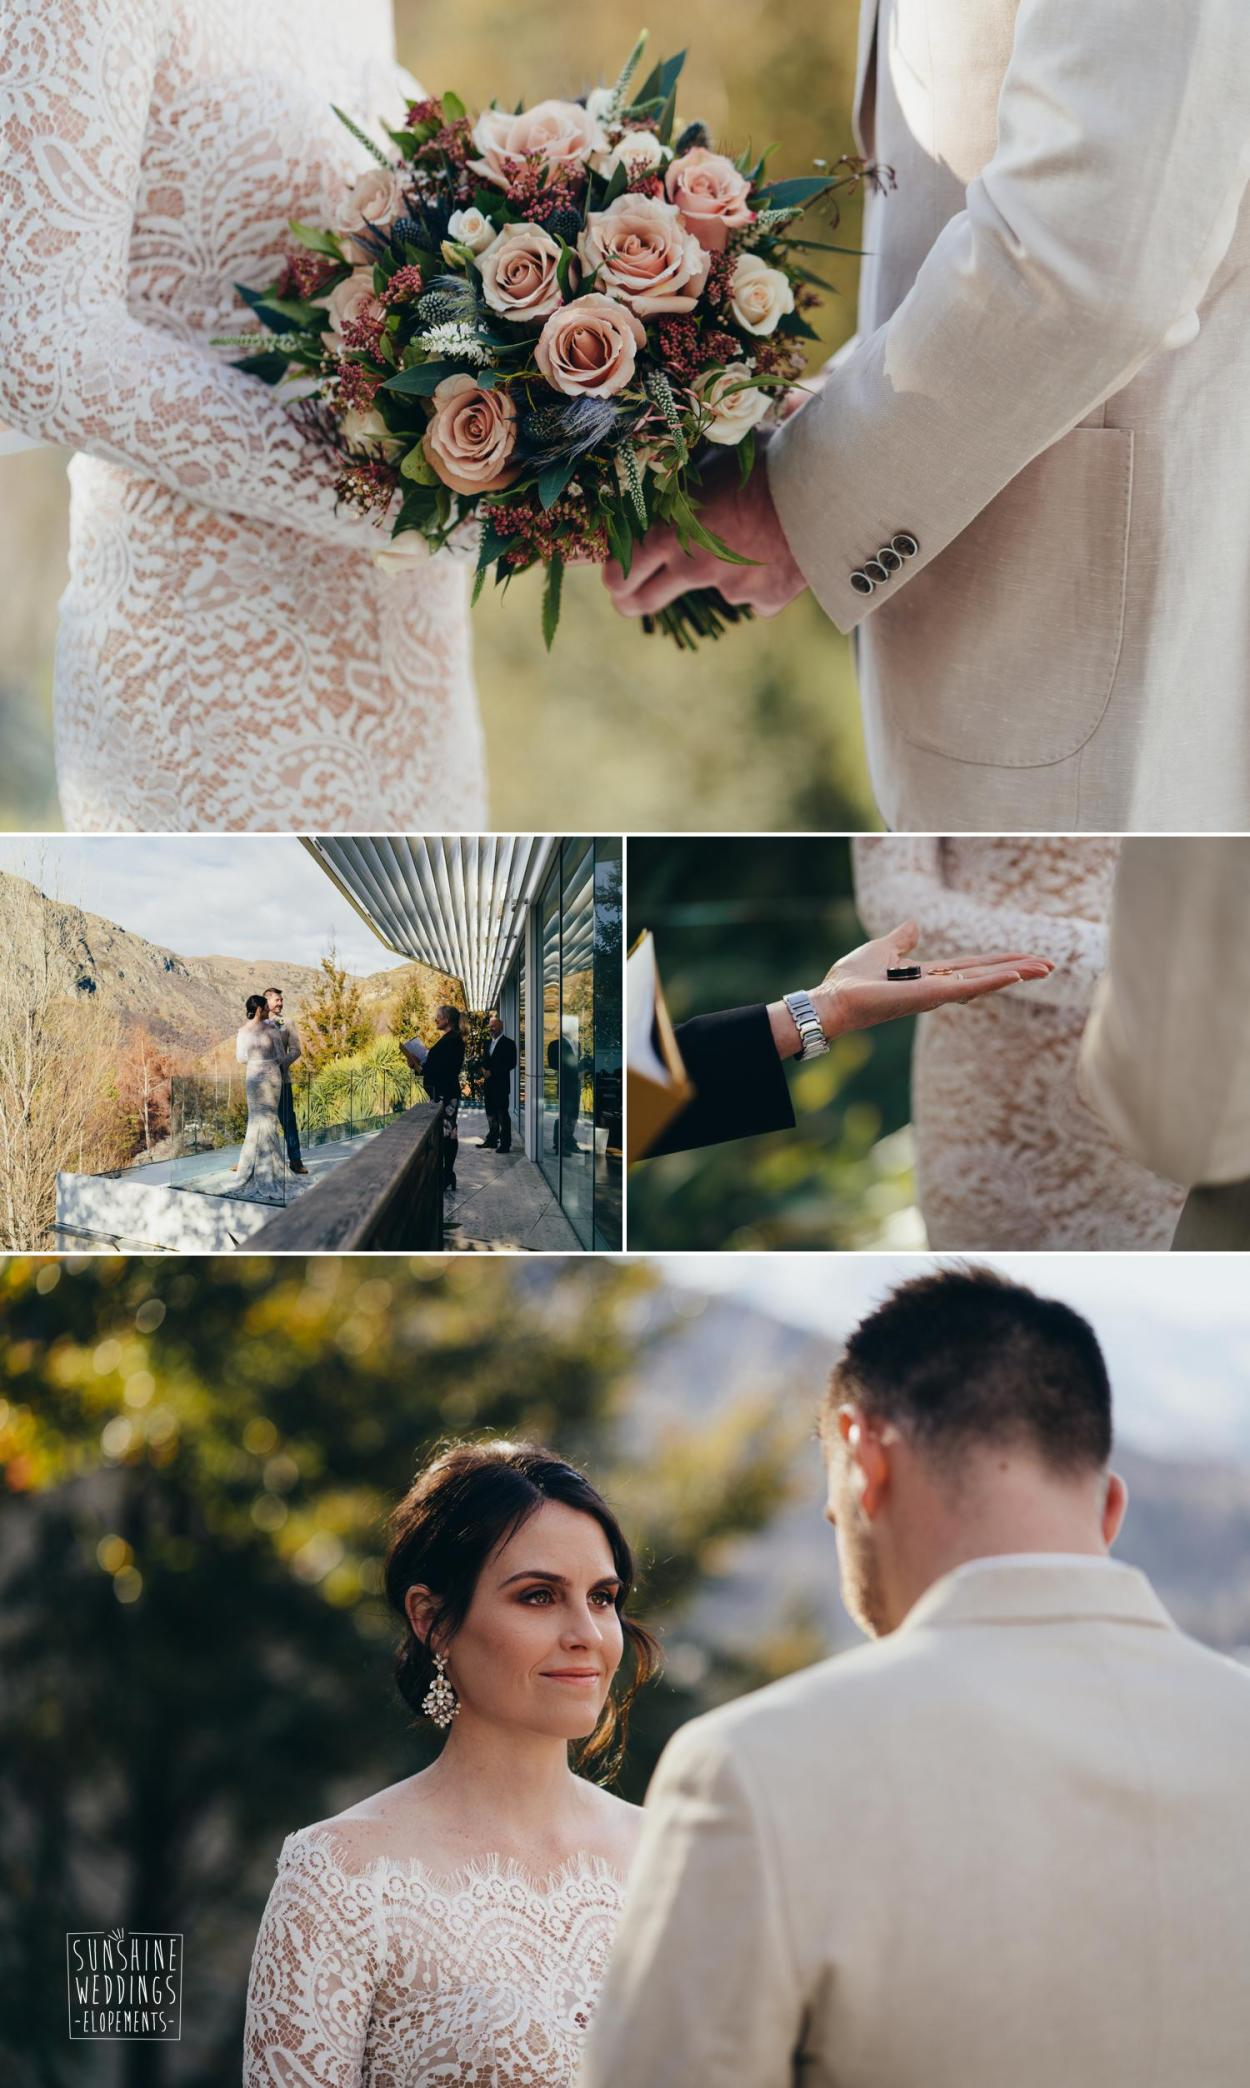 Secret elopement wedding